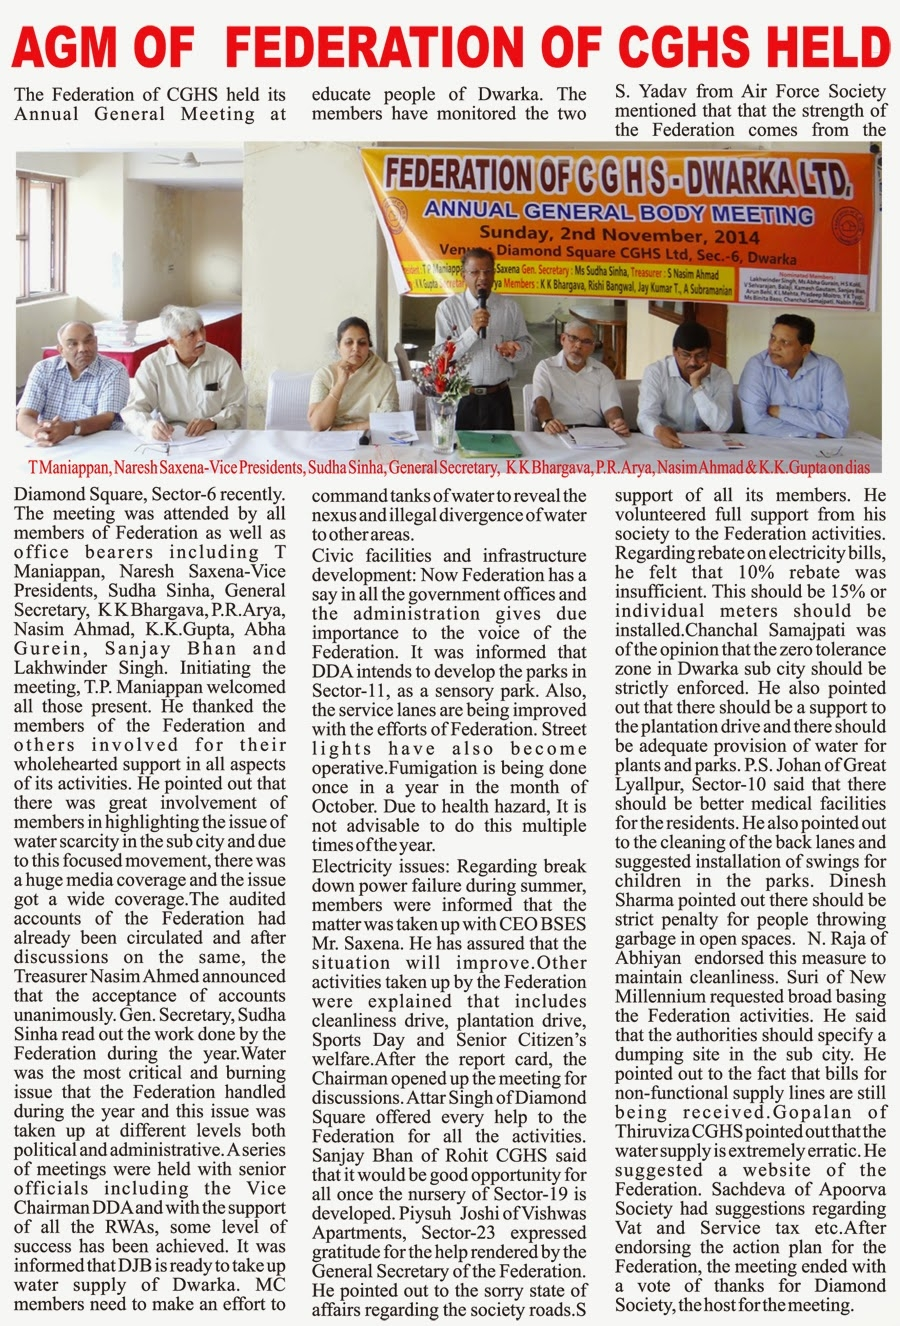 AGM of Federation of CGHS Held